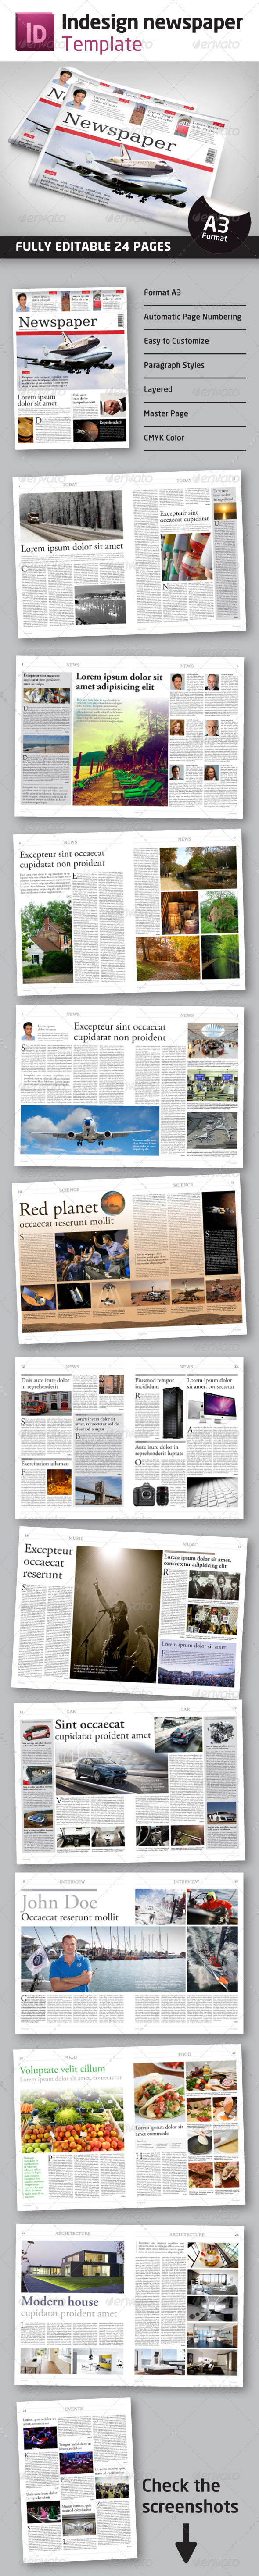 24 Pages Newspaper Template in A3 Format - Newsletters Print Templates